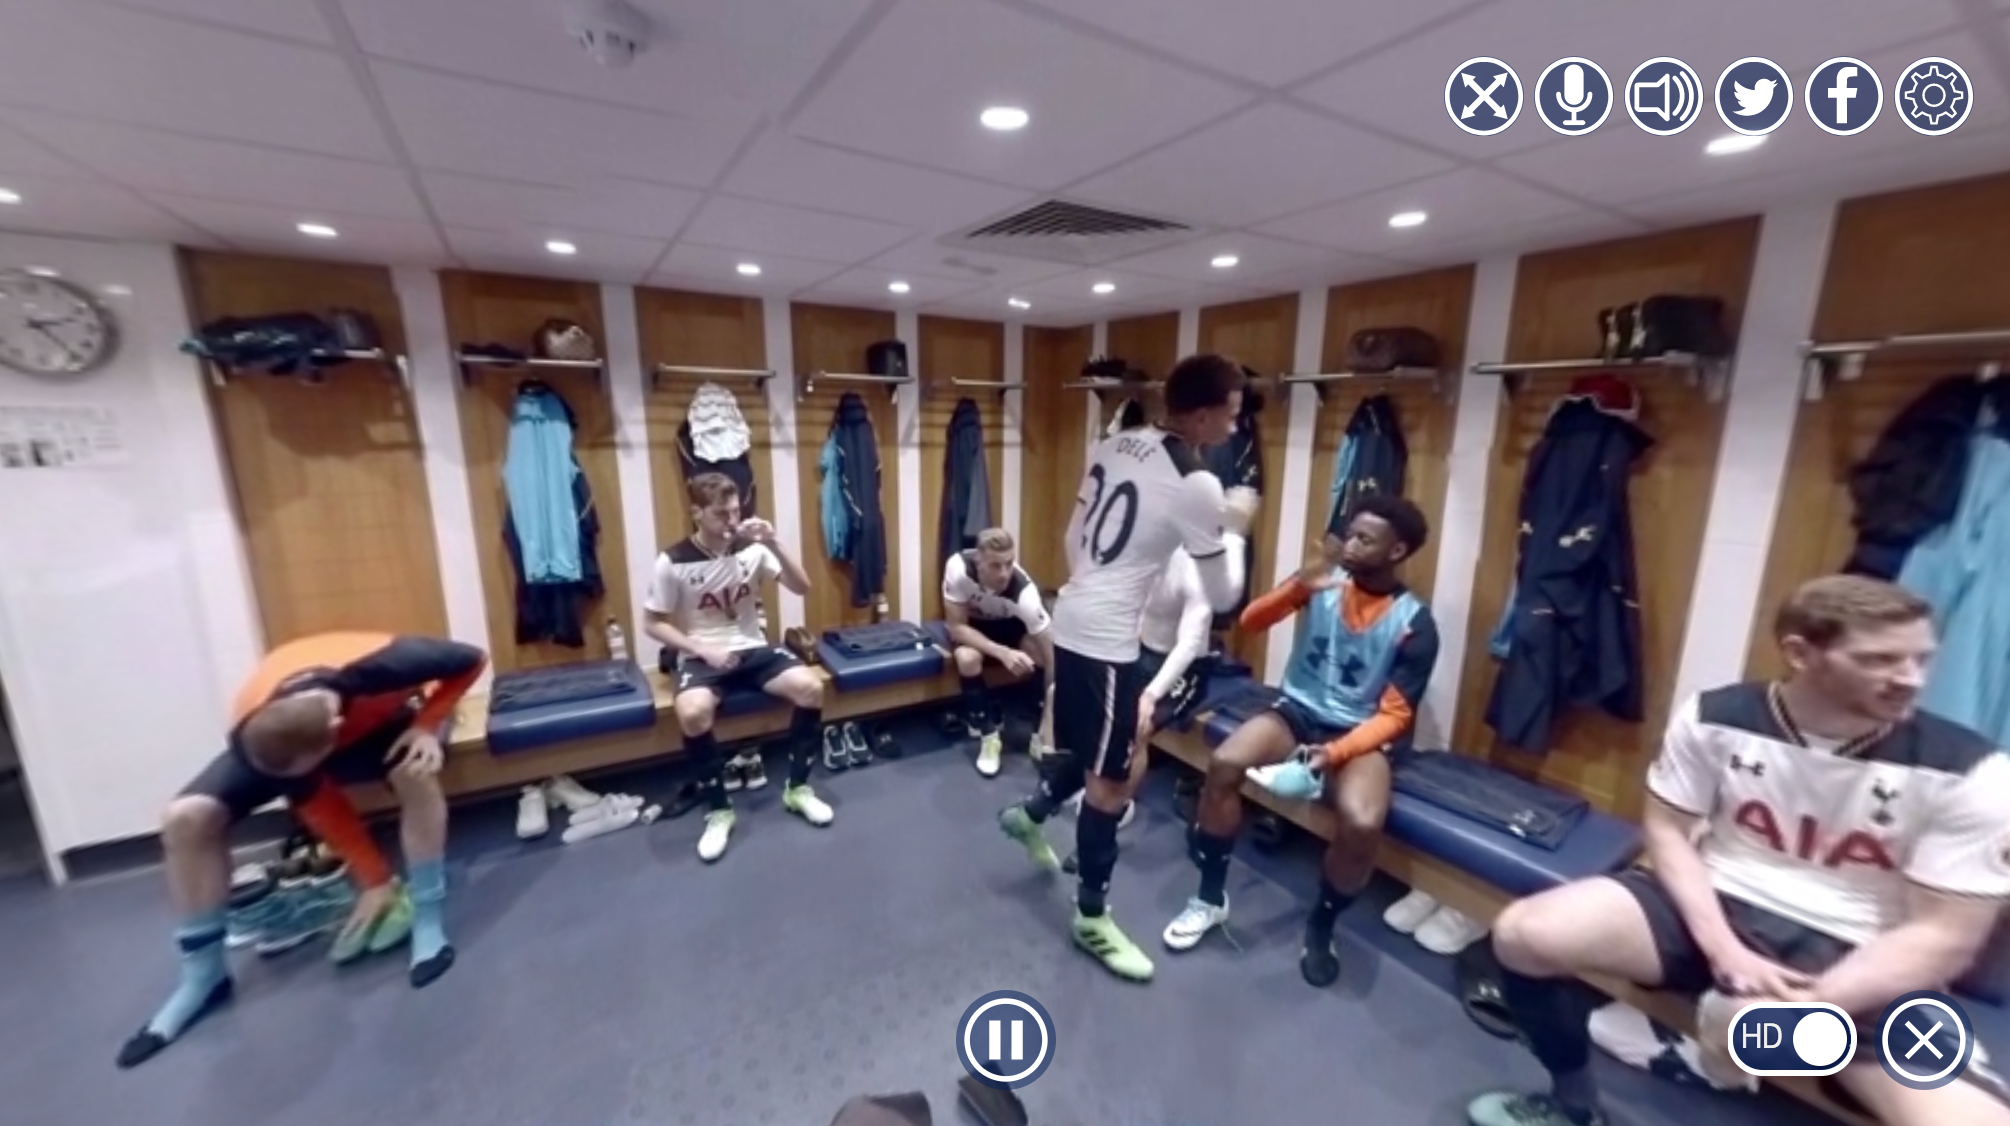 Tottenham Hotspur Live Space, The Lane 360